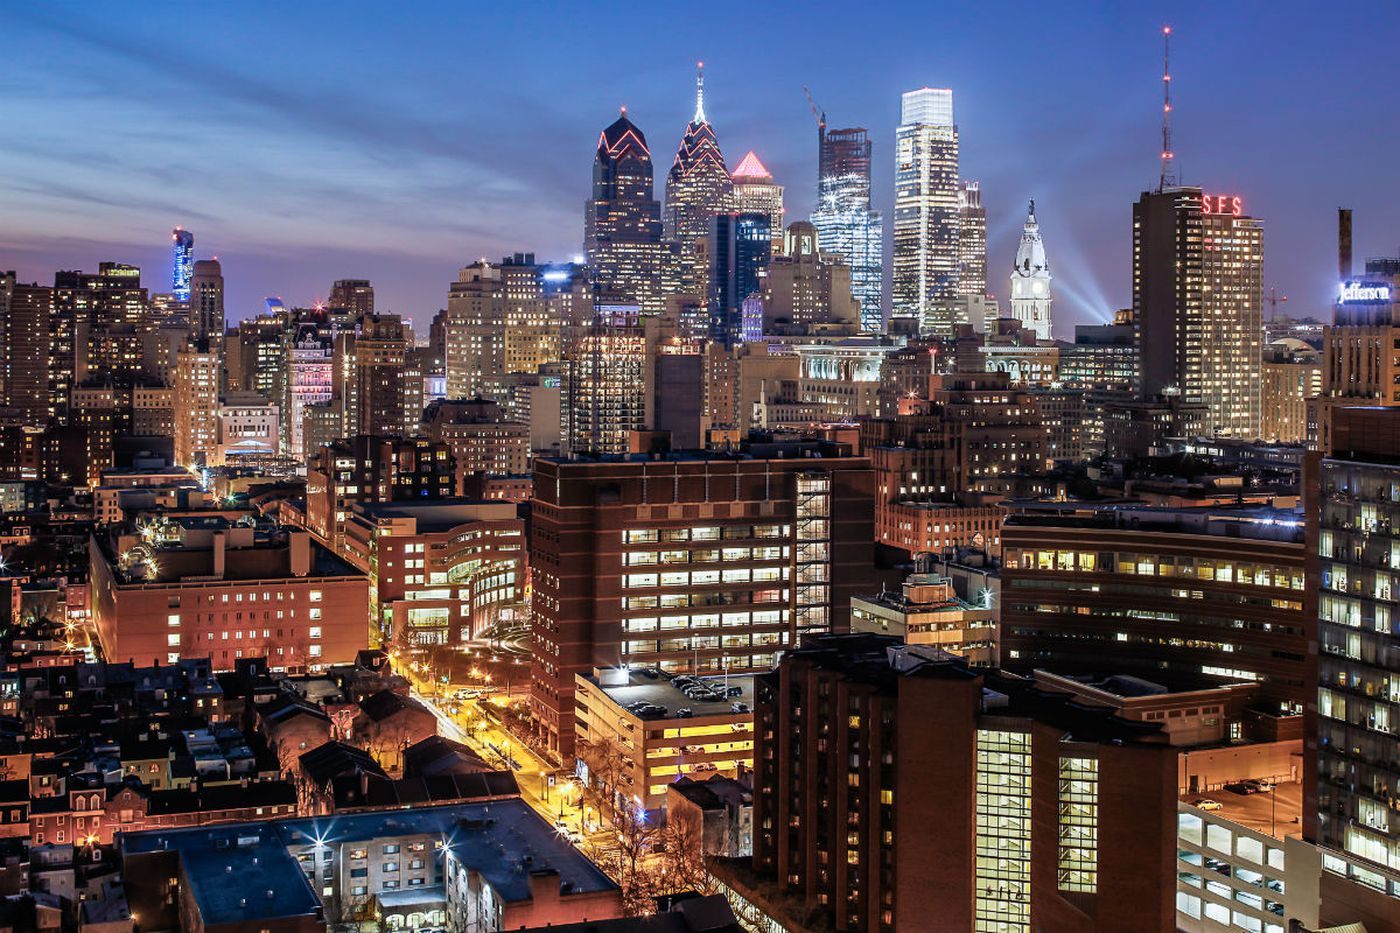 How to share the prosperity of Center City?